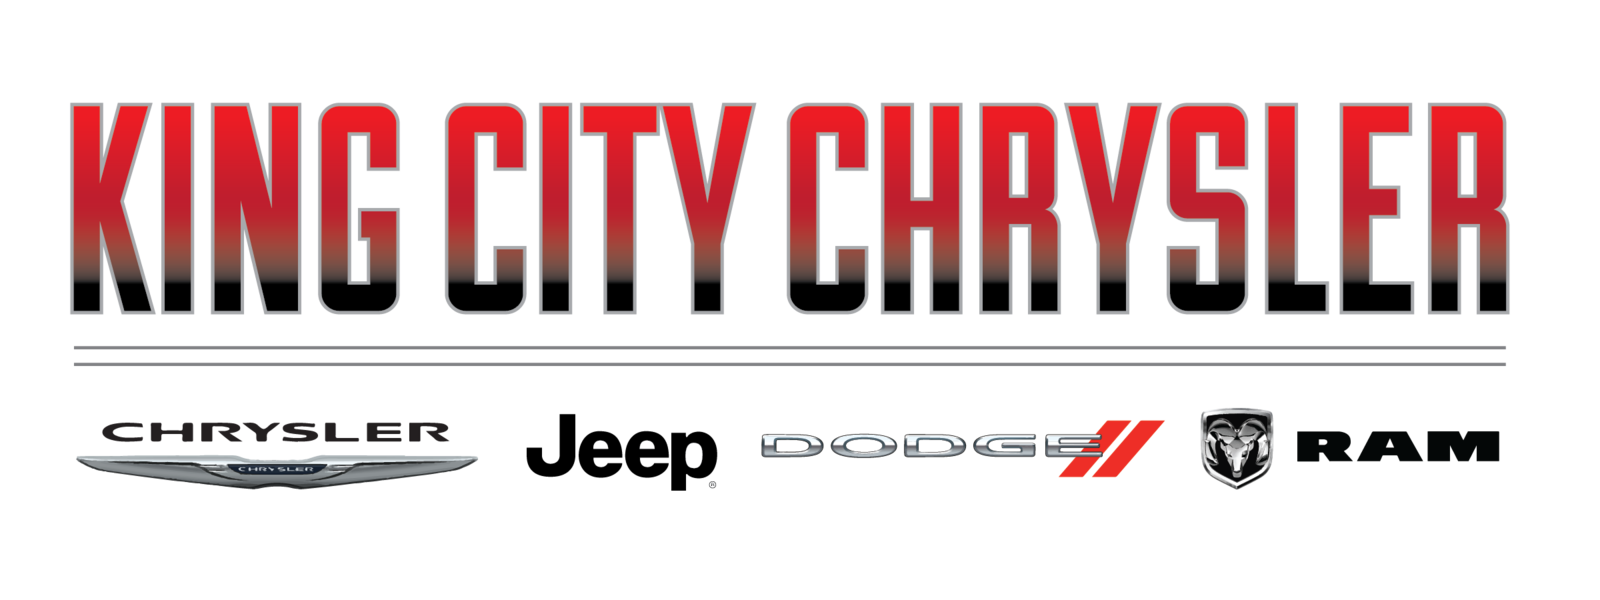 king city chrysler center mt vernon il read consumer reviews browse used and new cars for sale. Black Bedroom Furniture Sets. Home Design Ideas